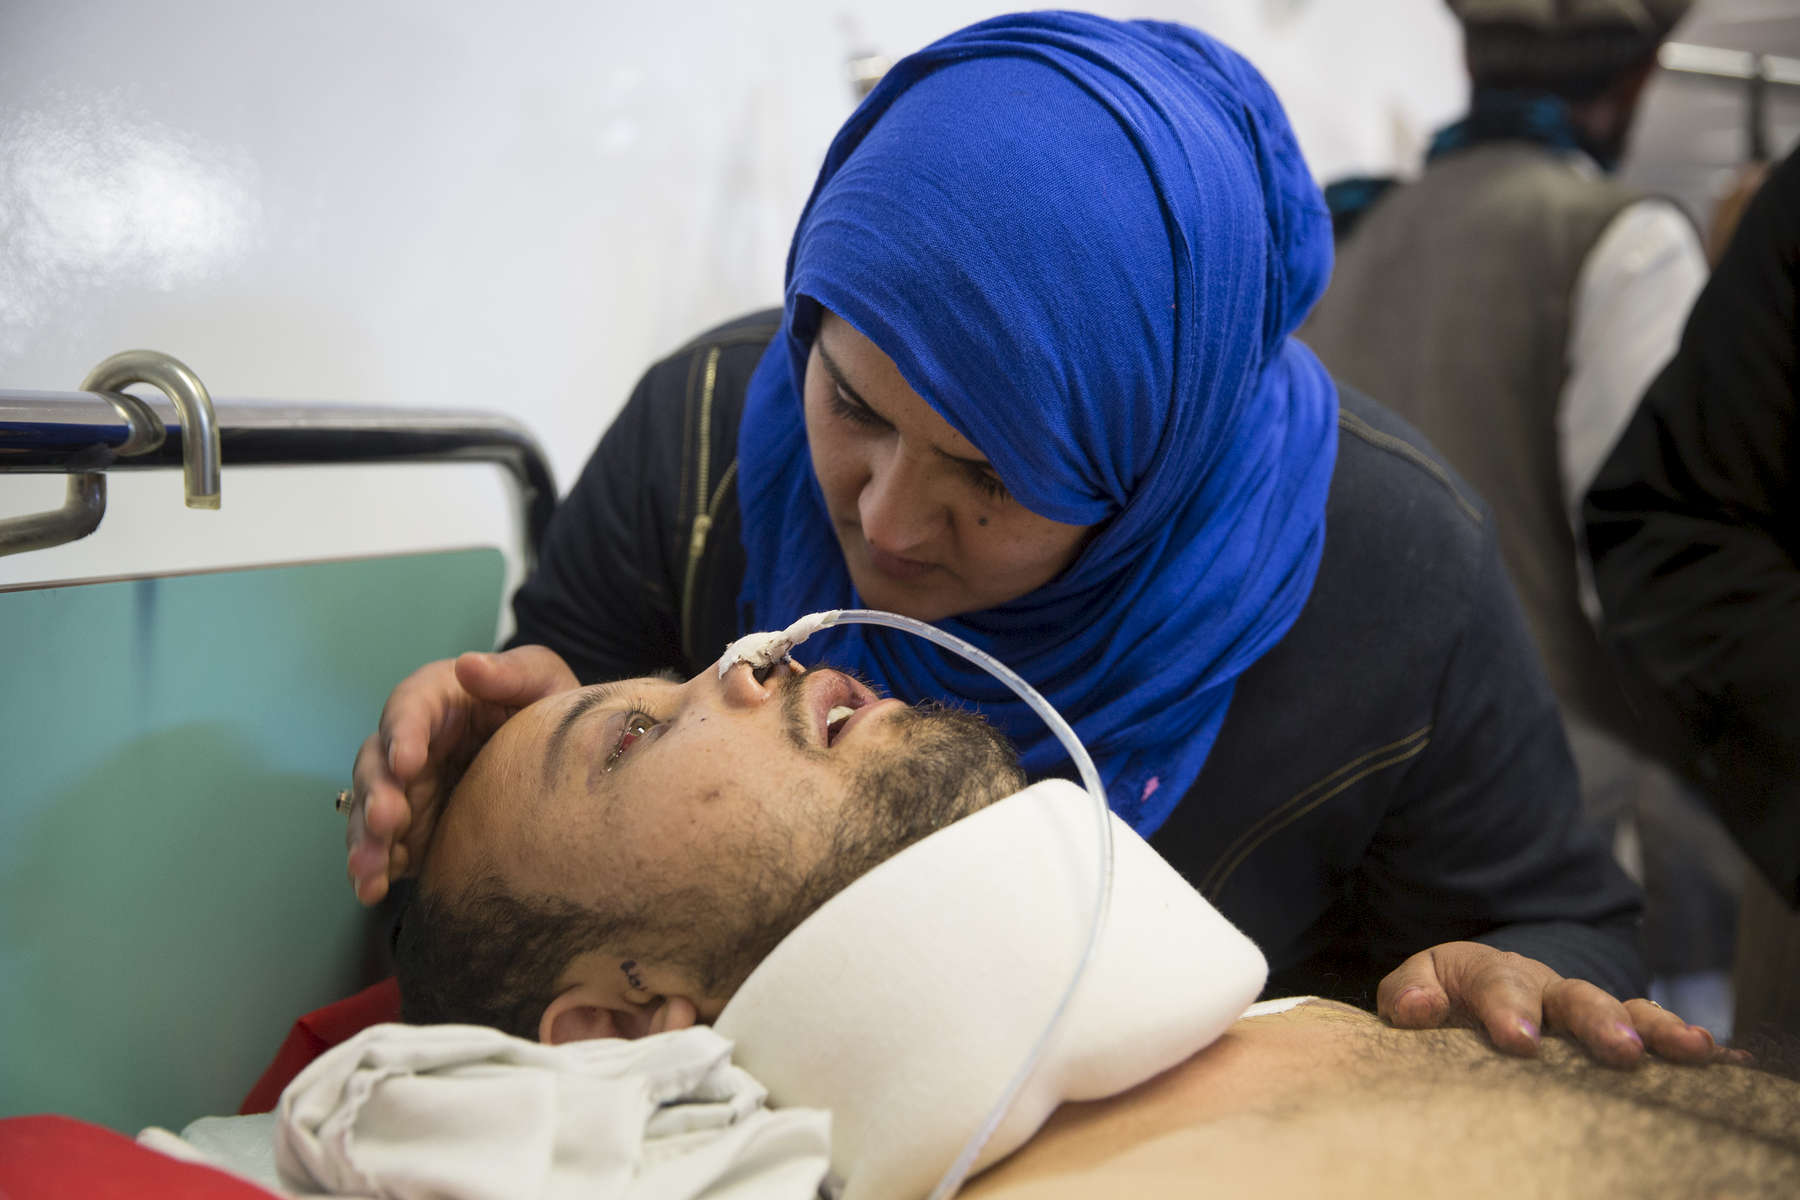 KABUL, AFGHANISTAN -MARCH 21, 2016: Azim, 25, a a quadriplegic who suffered bullet wounds to his face and shoulder gets visited by his wife Shokoria for the first time at the Emergency hospital in Kabul on March 21, 2016. Every year the UN comes out with their report documenting the unfortunate carnage from America's longest and most costly war in history. Along with the price tag estimated in the hundreds of billions, the human toll from a 2015 UN Assistance Mission To Afghanistan (UNAMA) report stated the number of Afghan civilians killed and wounded surpassed 11,000.  which was the deadliest on record for civilians in Afghanistan since the US-led invasion more than 14 years ago.